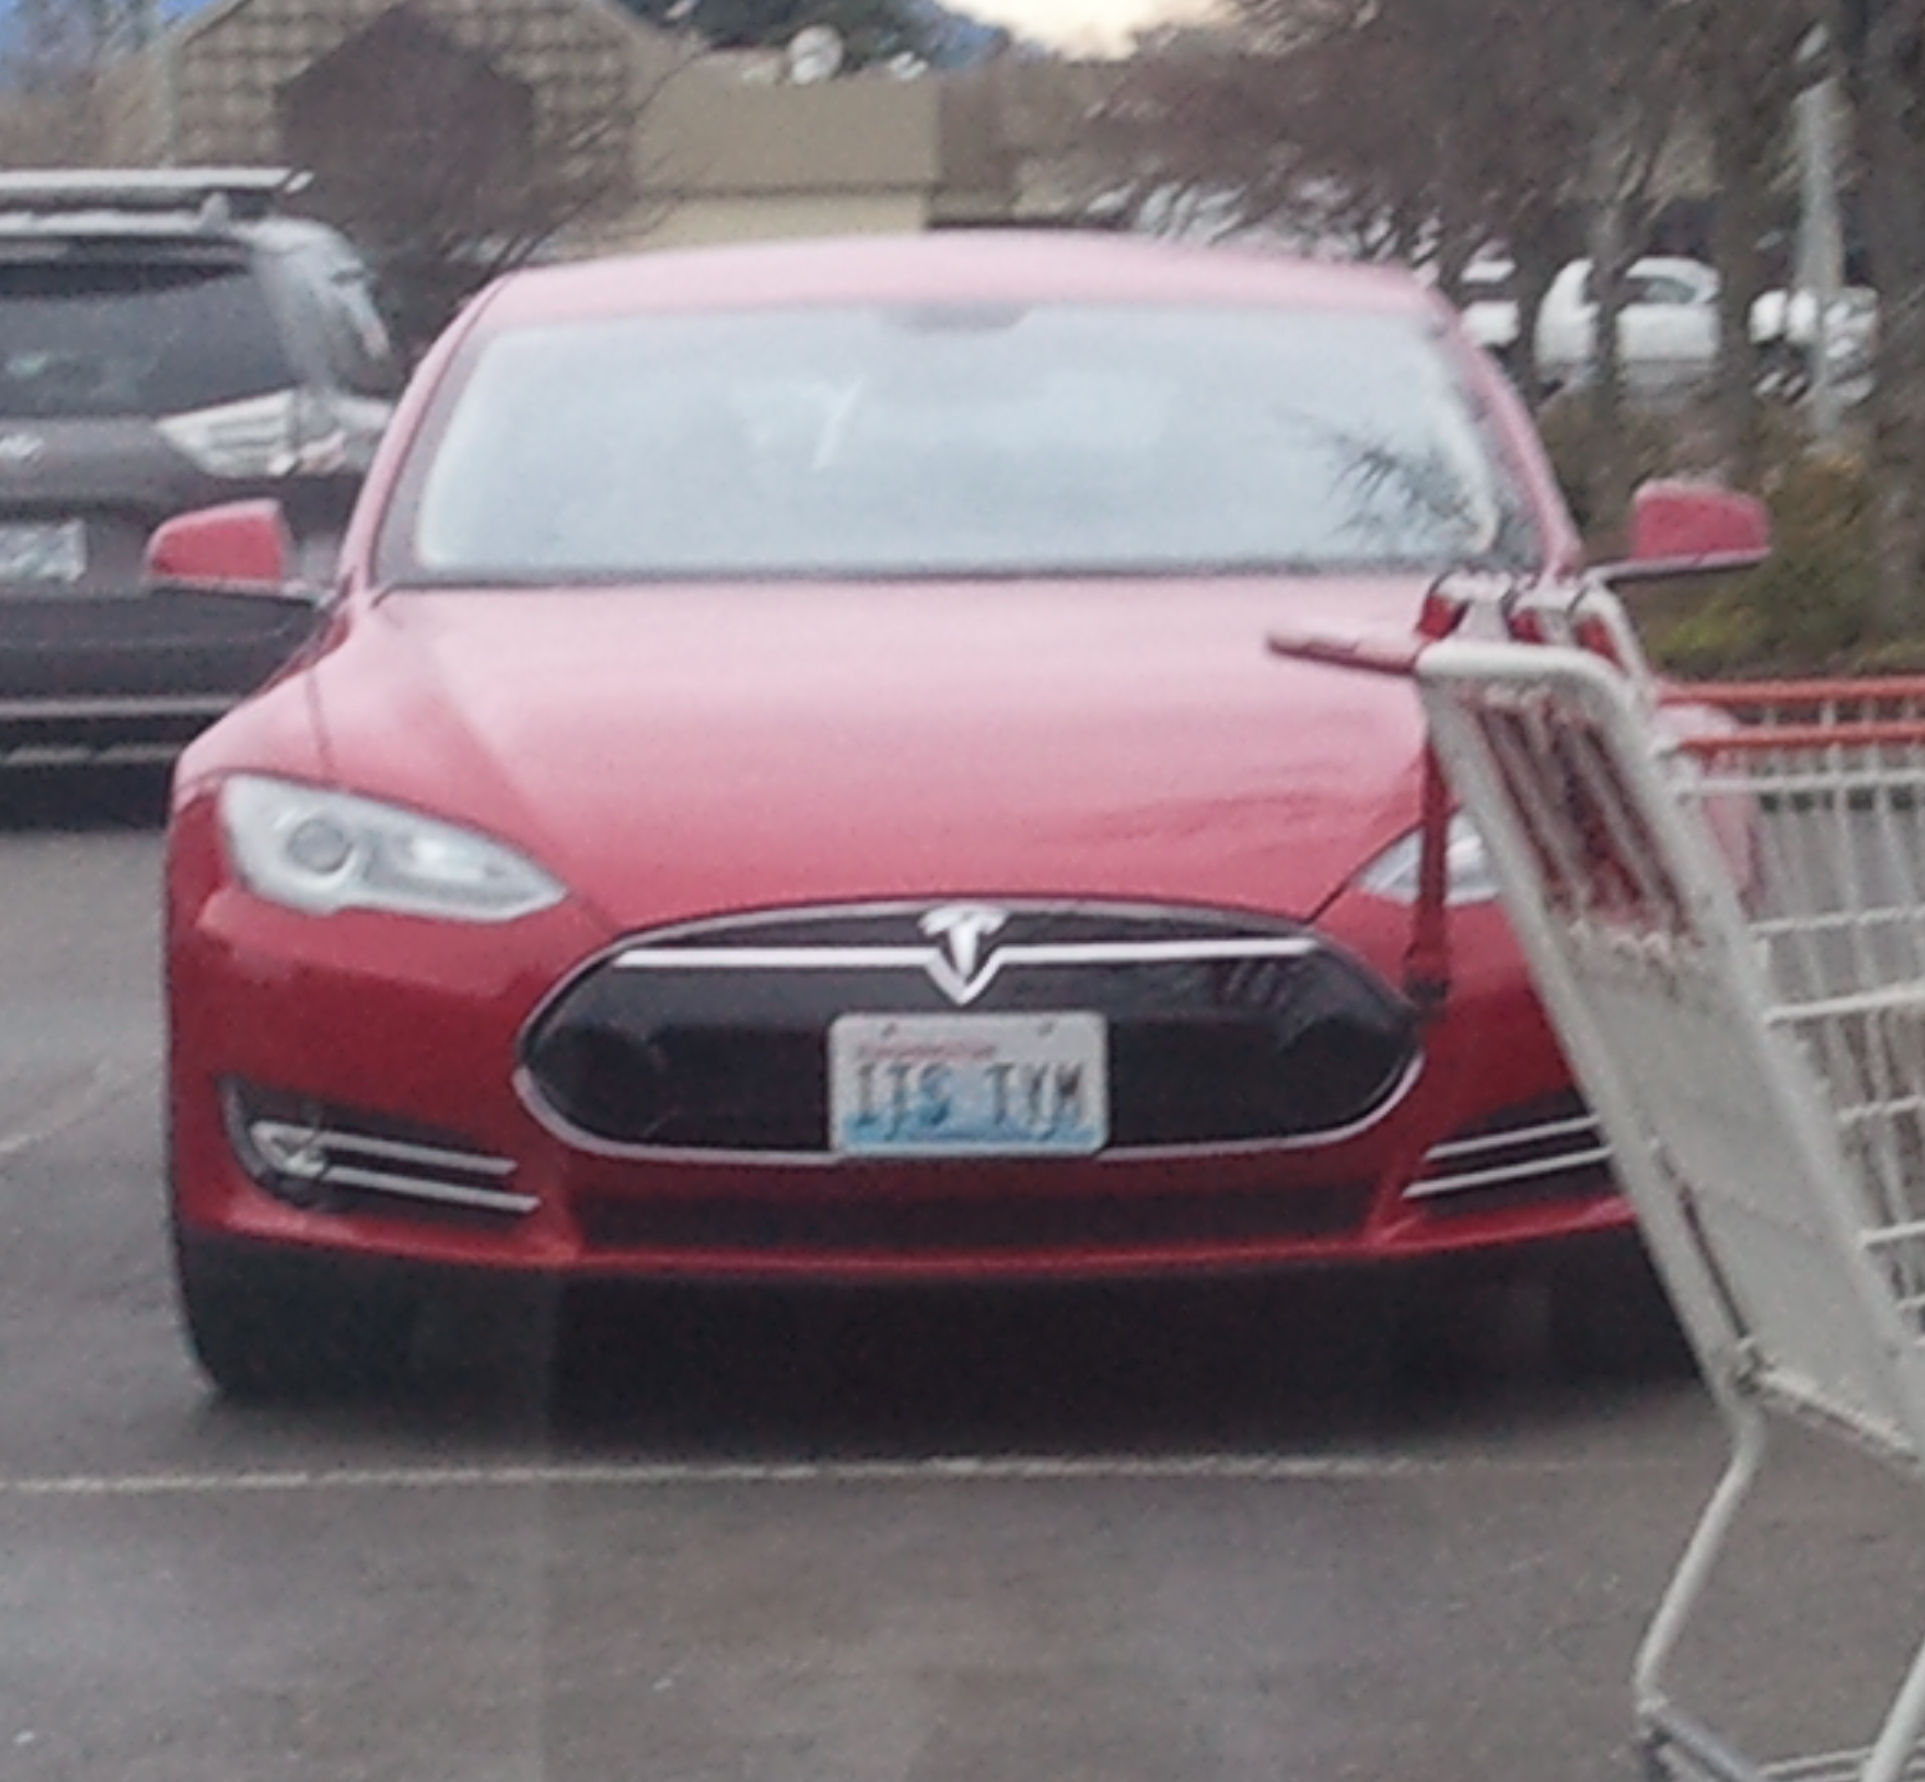 filethis is a picture of a tesla model s with a humorous license plate